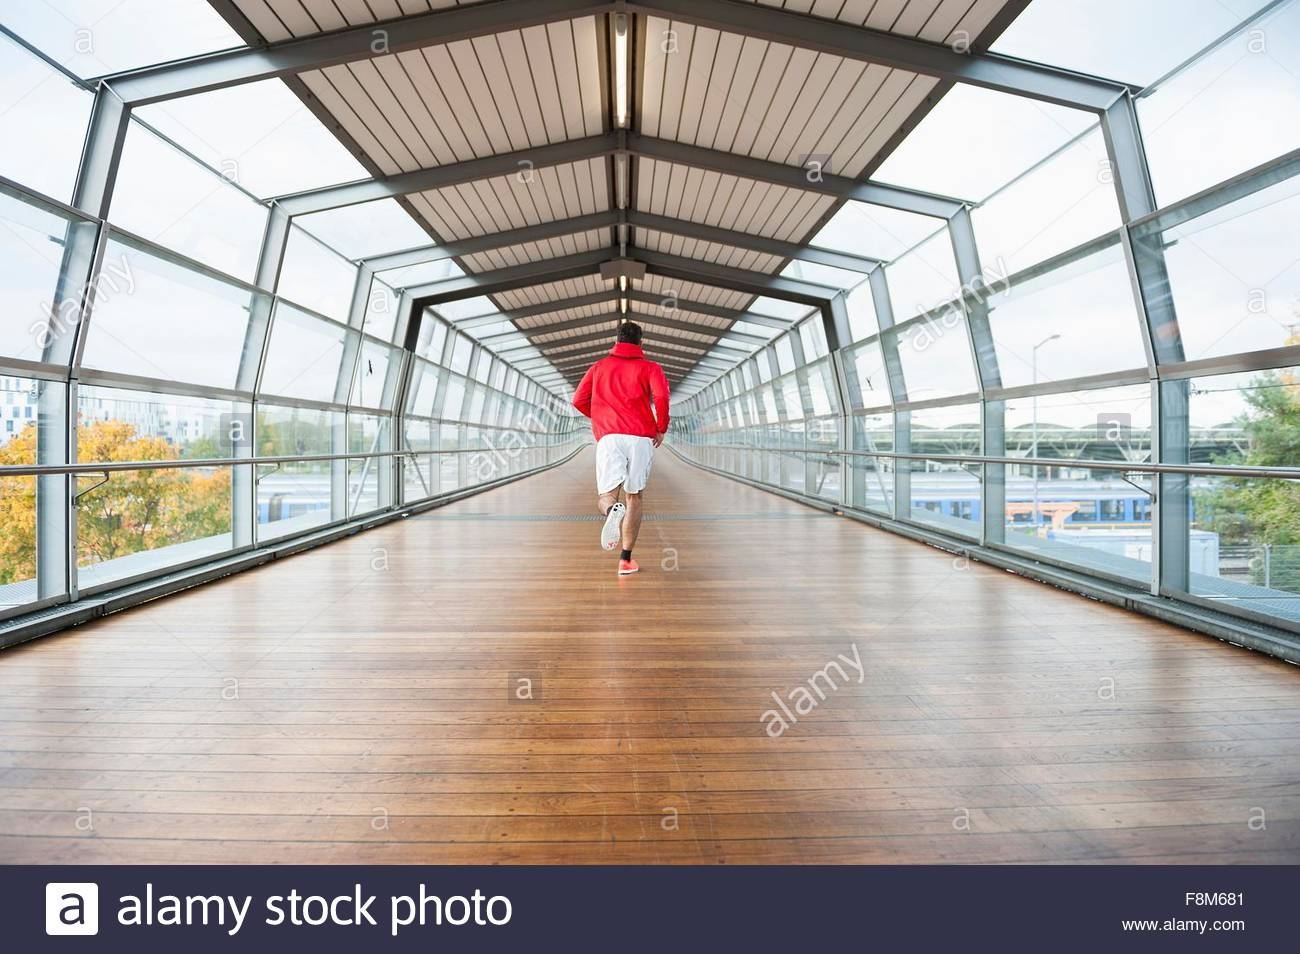 Rear view of young male runner running across footbridge - Stock Image